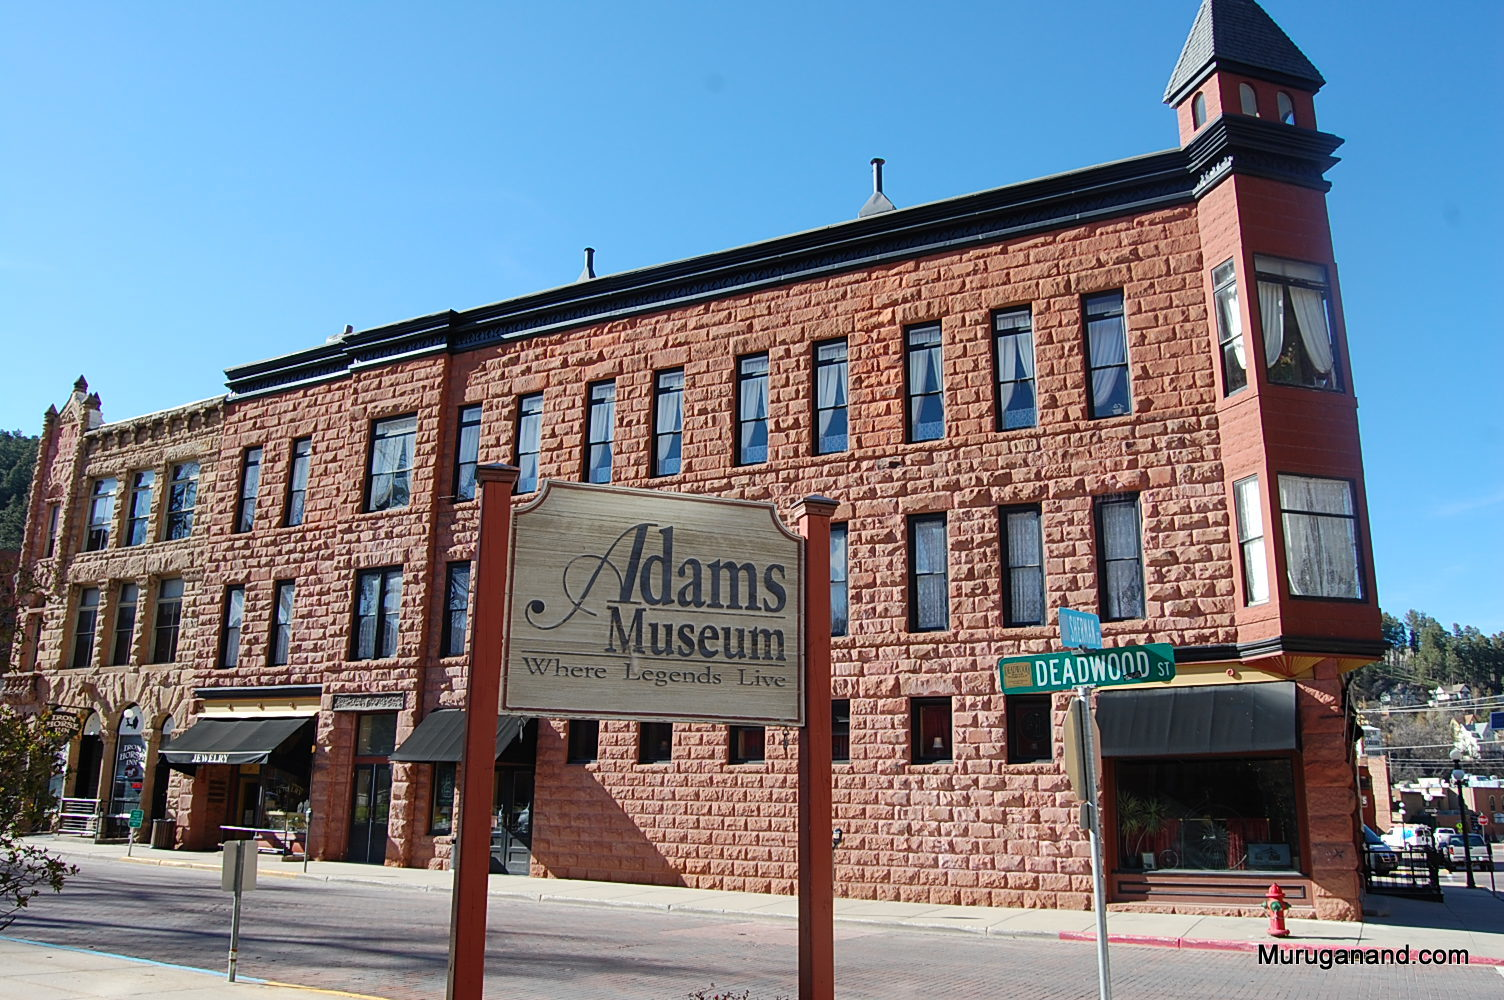 Adams Museum is a resource for the history of Deadwood.